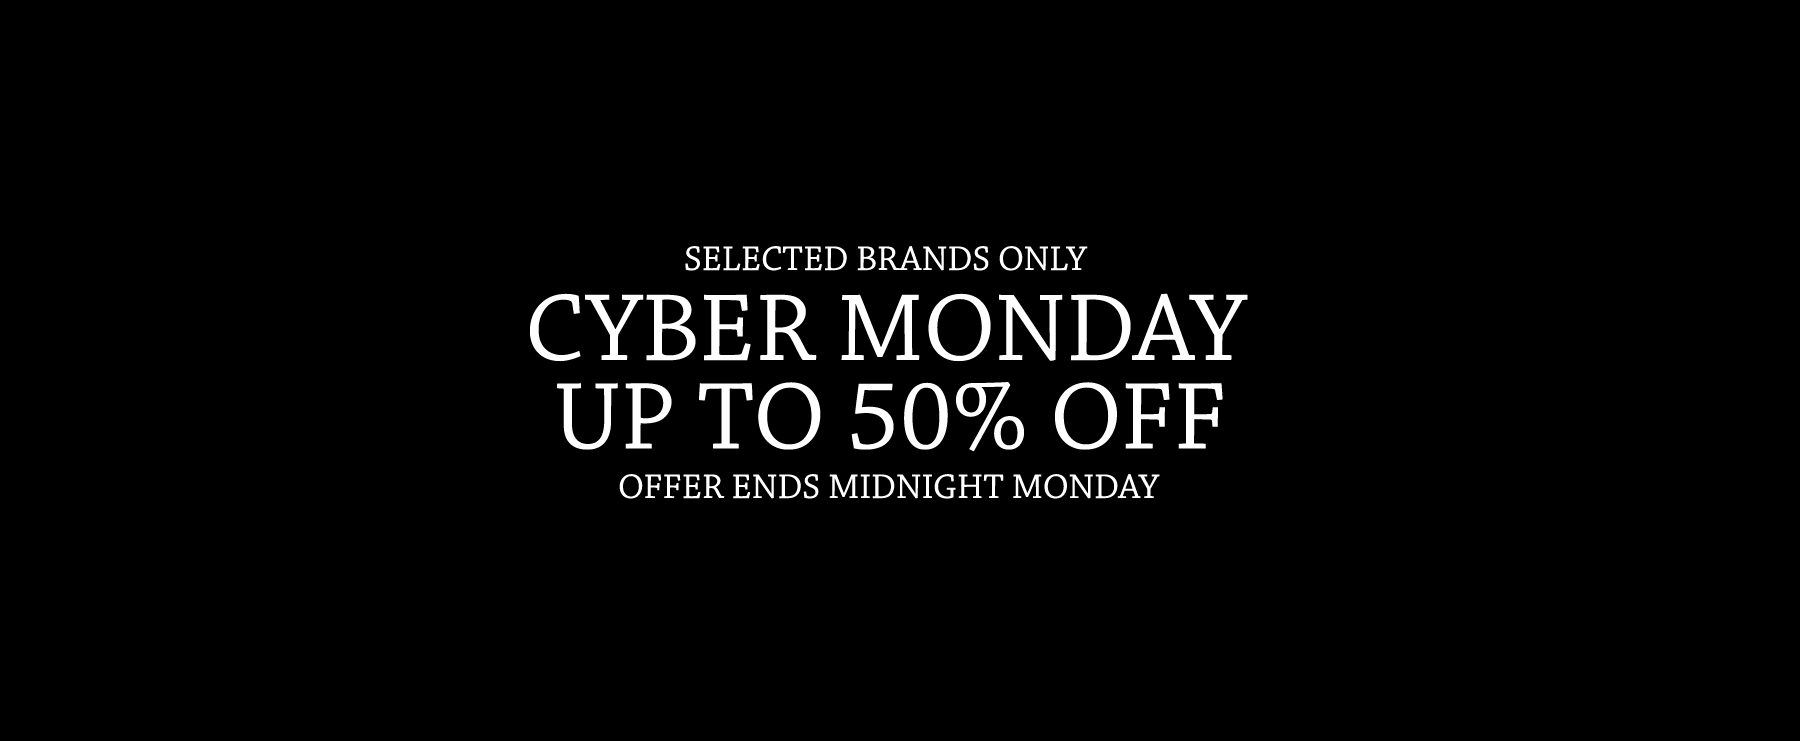 Cyber Monday Up To 50% OFF